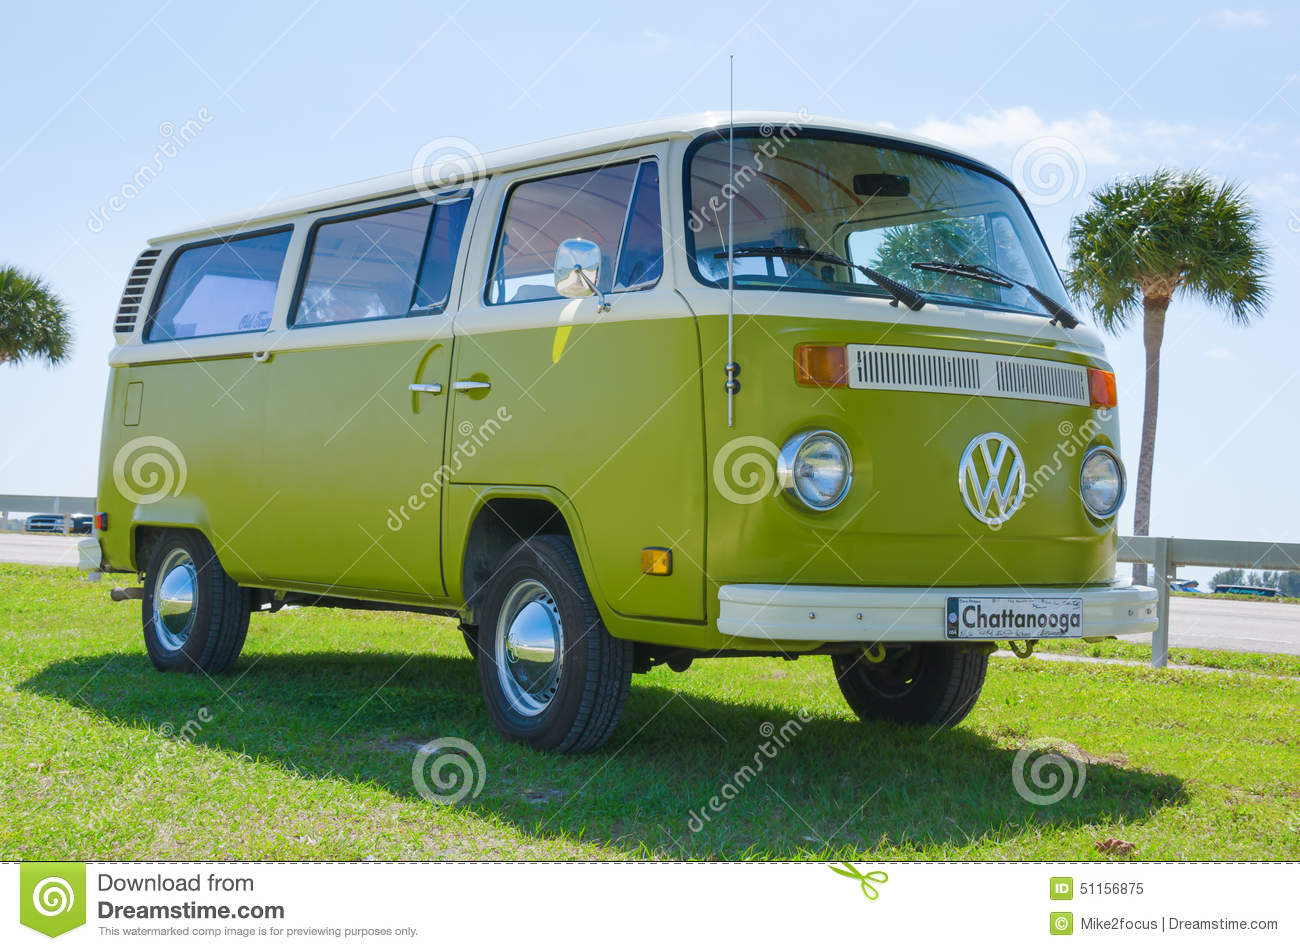 Volkswagen vw camper van antique car green white for Interieur de camping car